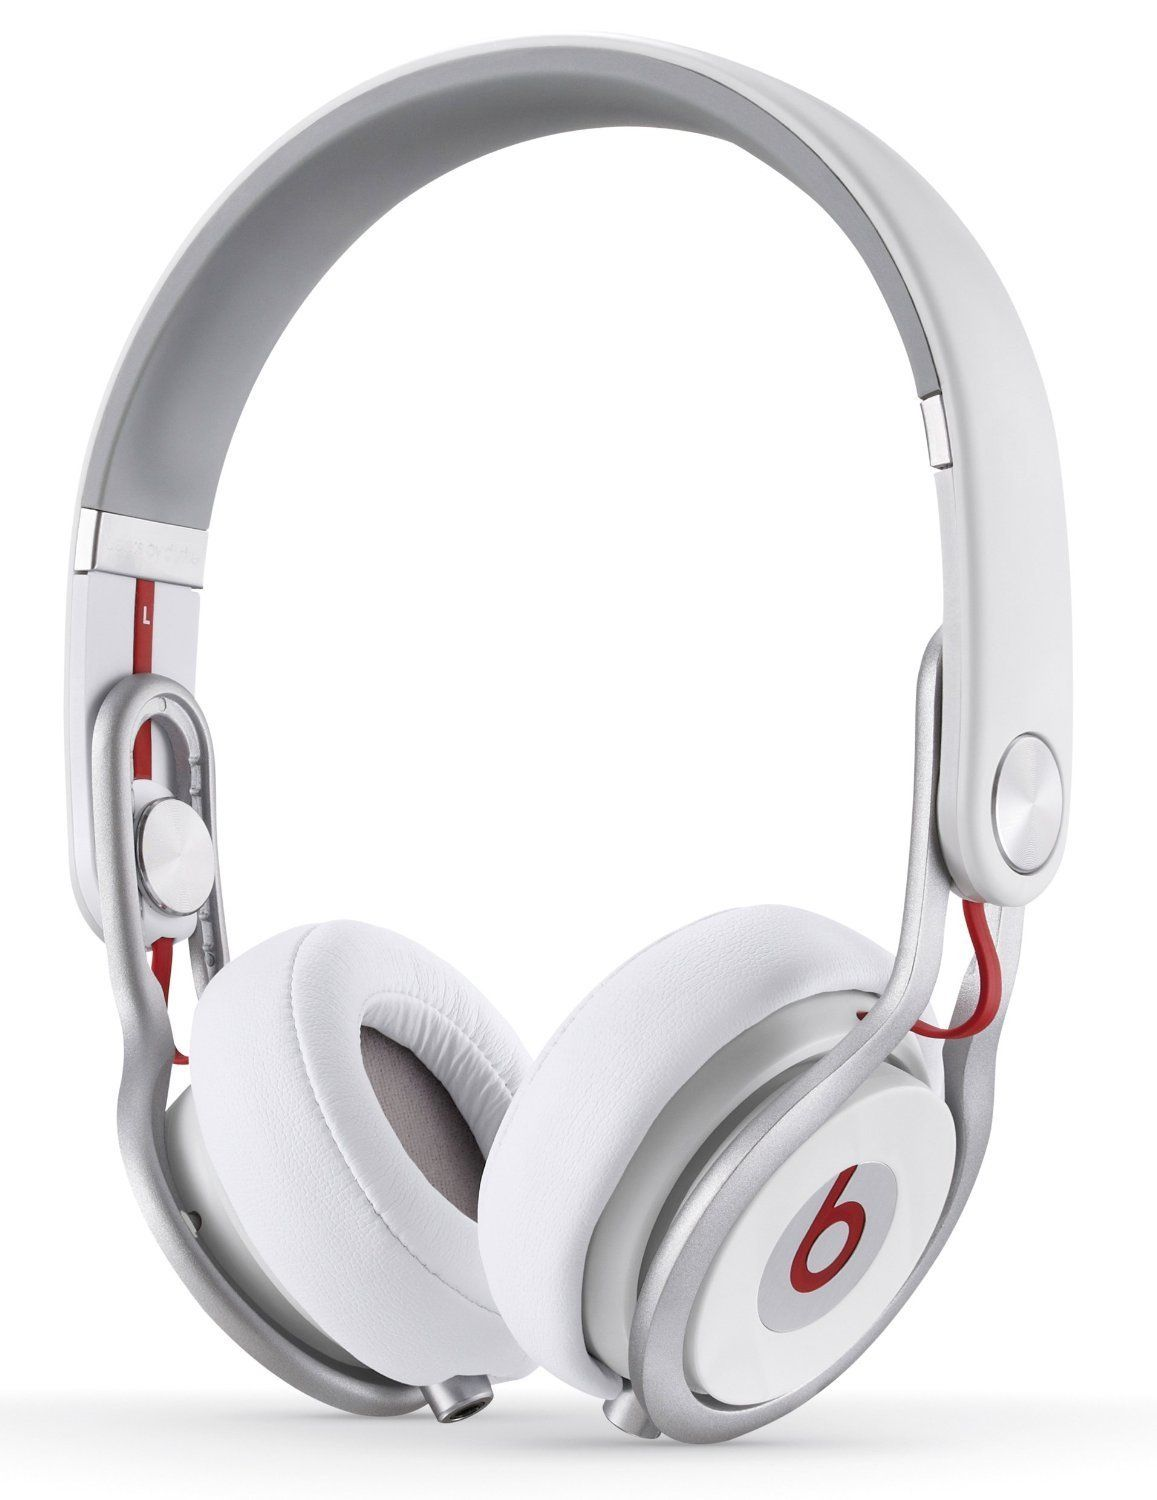 76a4c7a637c Whether you mix your own beats or just like listening to them, you're gonna  wanna check out these headphones.